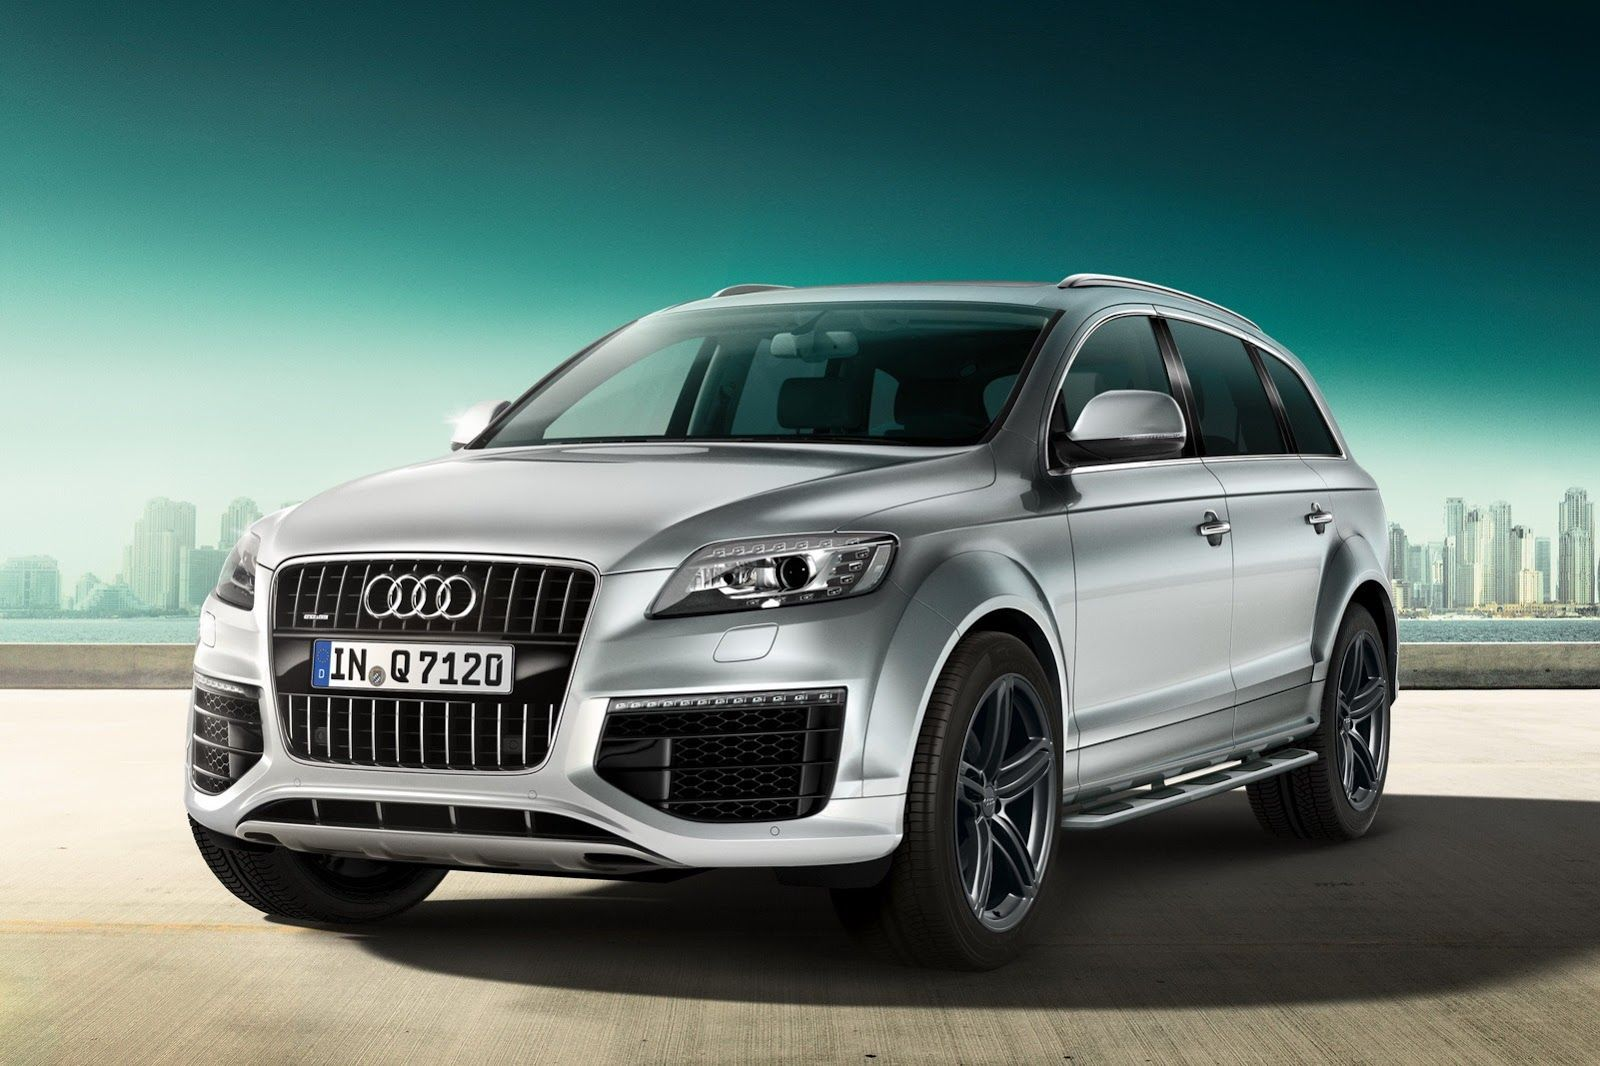 new review 2015 audi q7 release front view model | cars